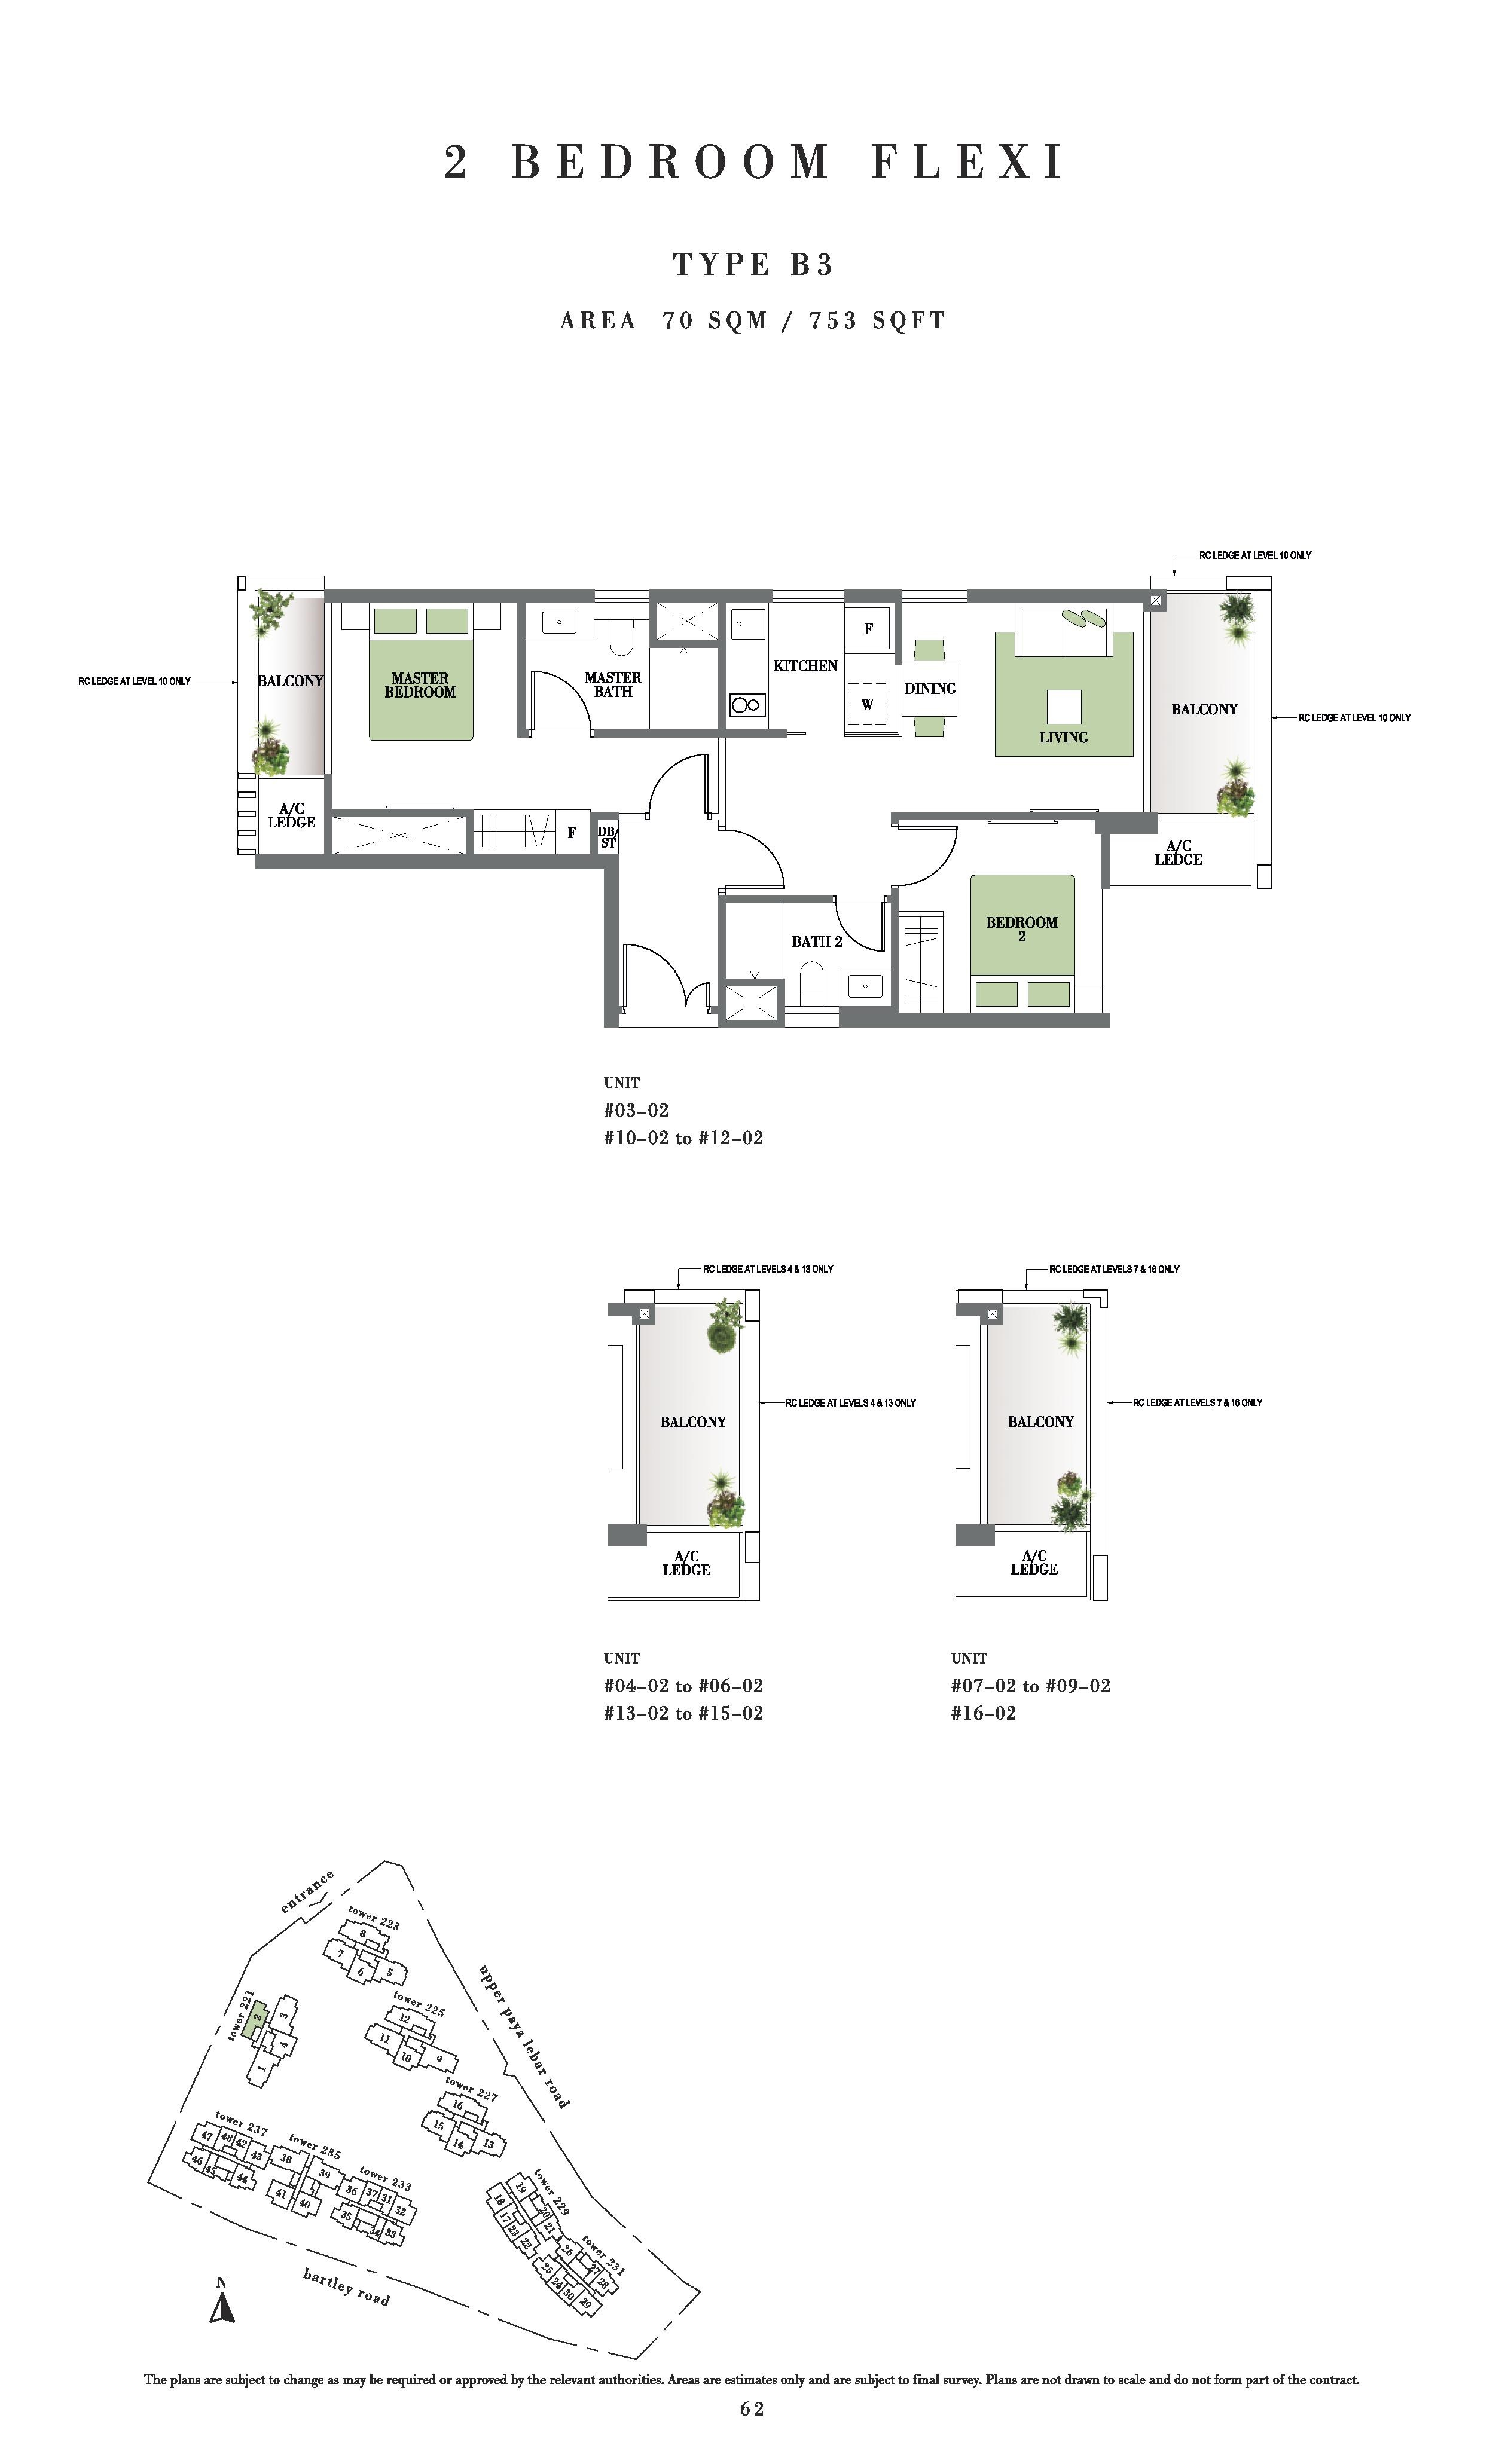 Botanique @ Bartley 2 Bedroom Flexi Floor Plans Type B3